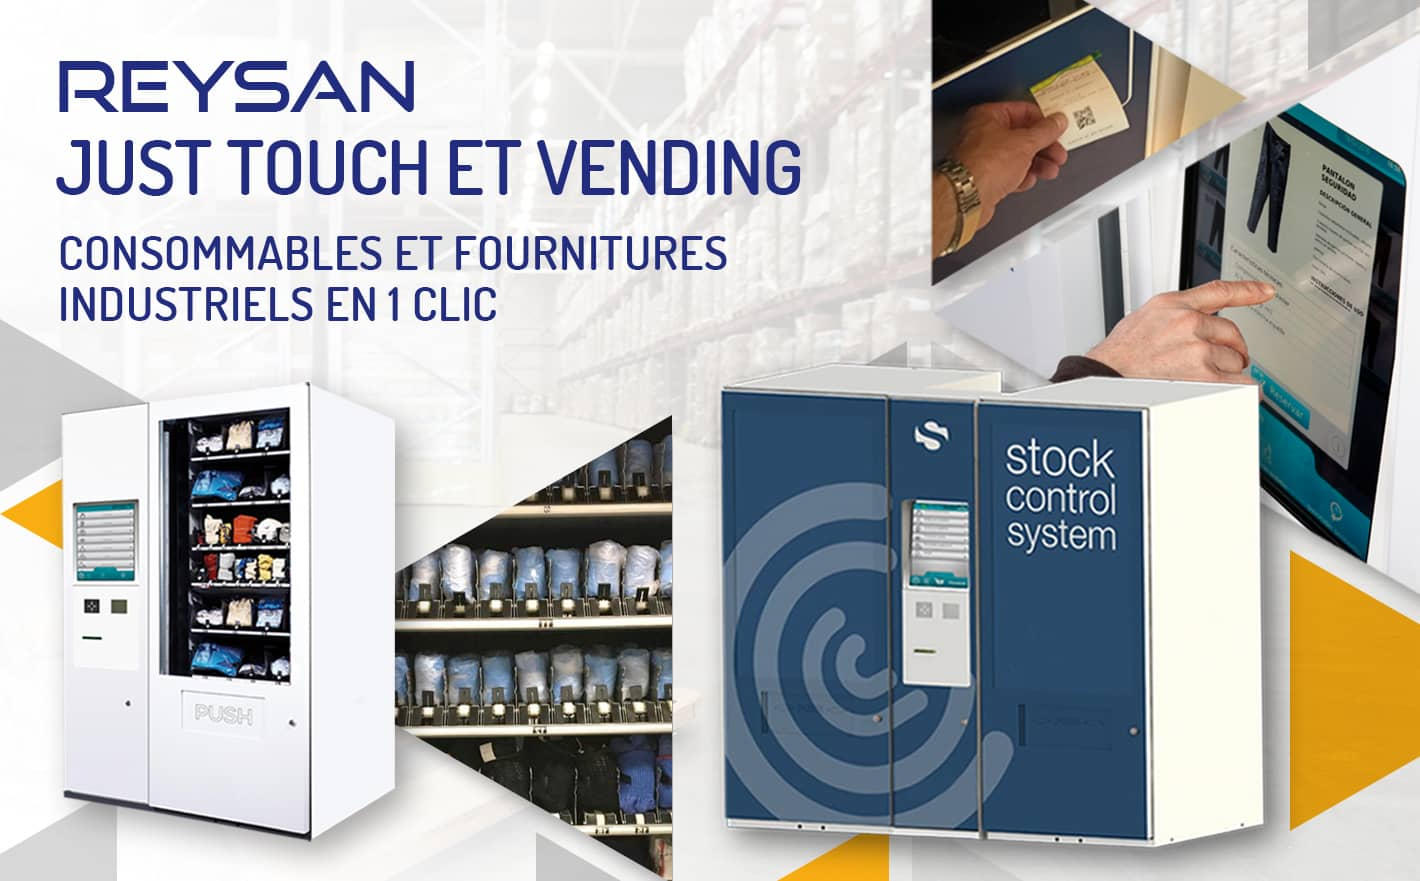 Reysan Just Touch et Vending